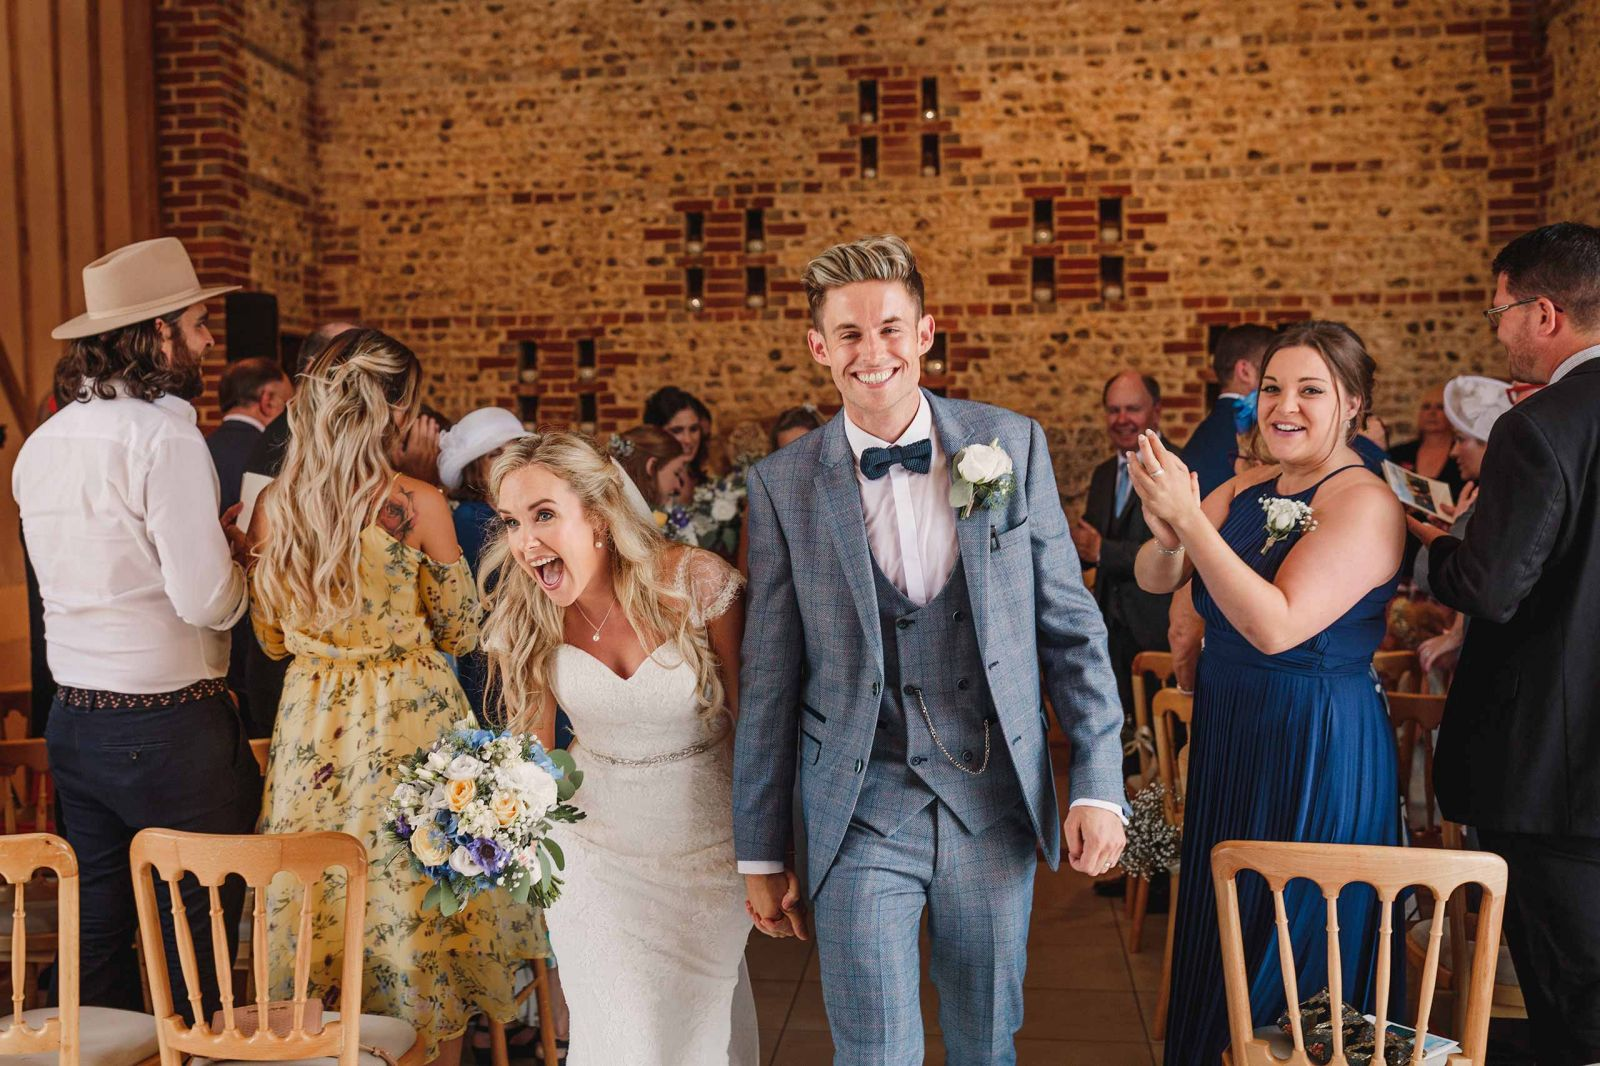 Bride and groom walk down the aisle after their Upwaltham Barn wedding ceremony